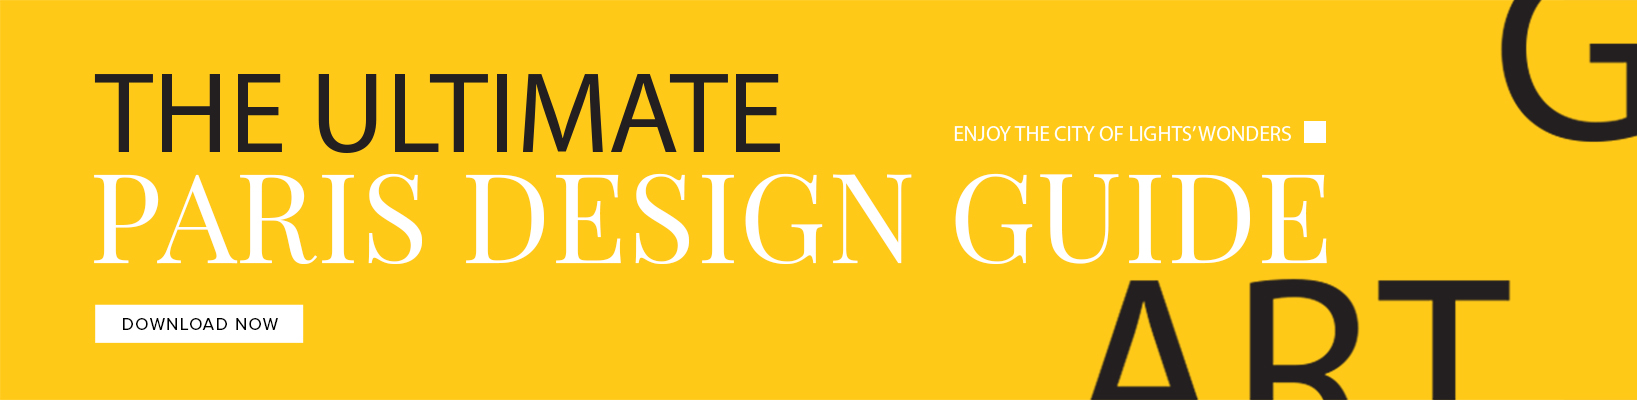 The Ultimate Paris Design Guide banner 20EBOOK 20ARTIGO 20